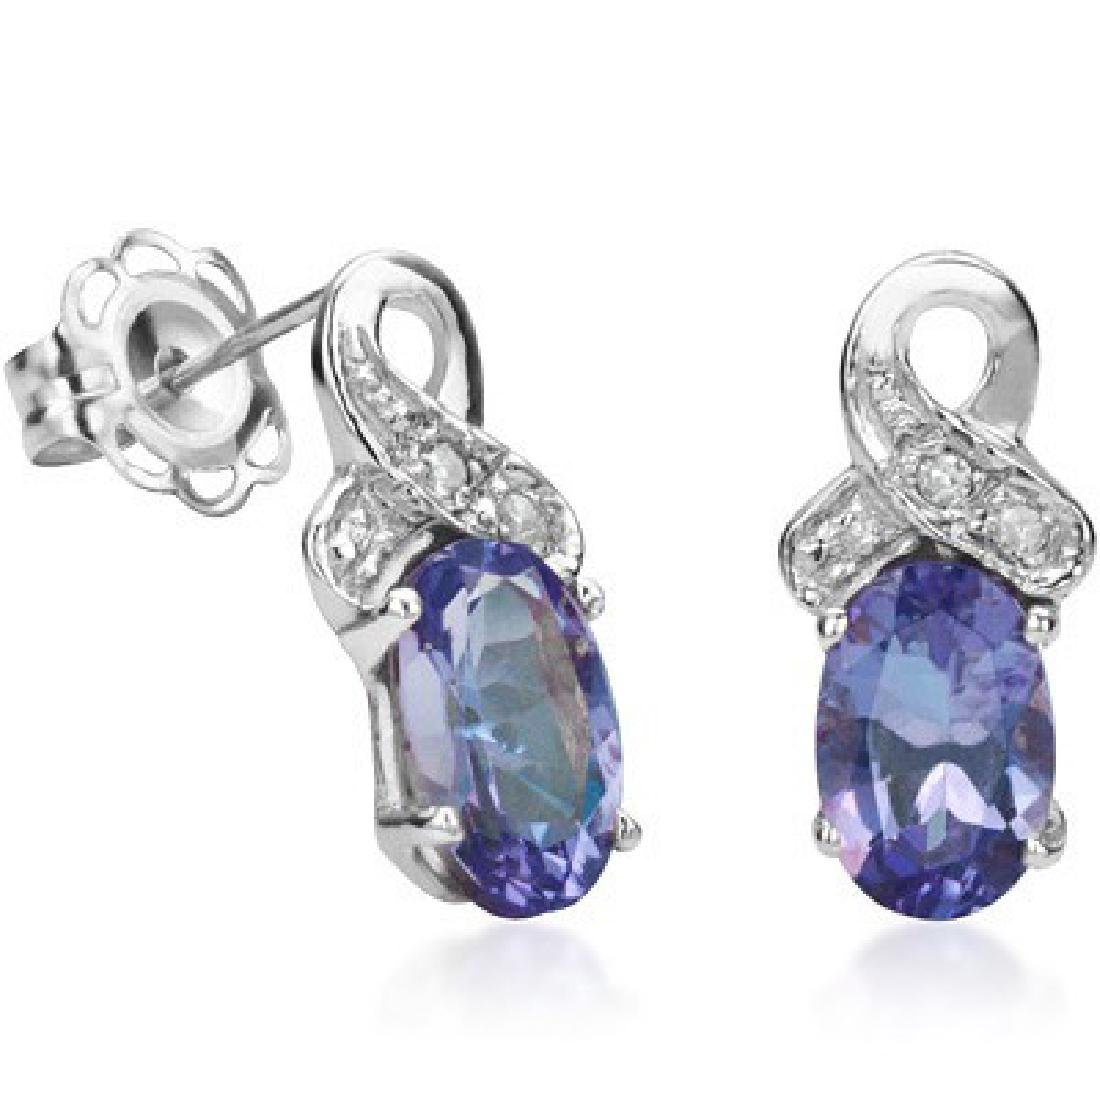 SPLENDID TANZANITE.DIAMOND STERLING EARRINGS